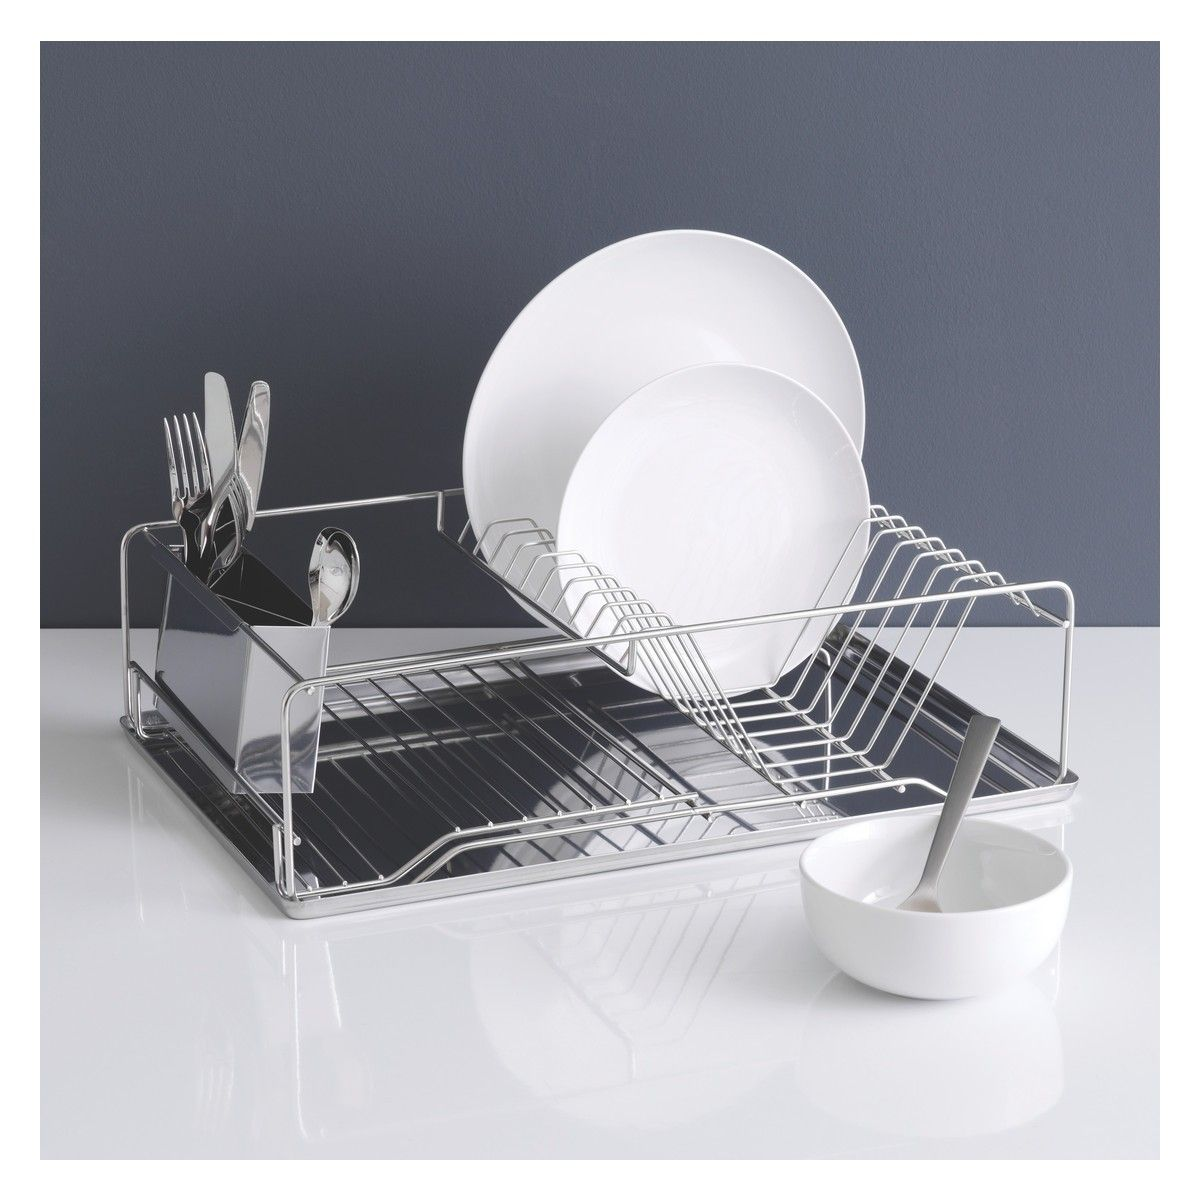 Cuisinart Dish Rack Amusing Decker Stainless Steel Single Level Dish Drainer  Dish Drainers Inspiration